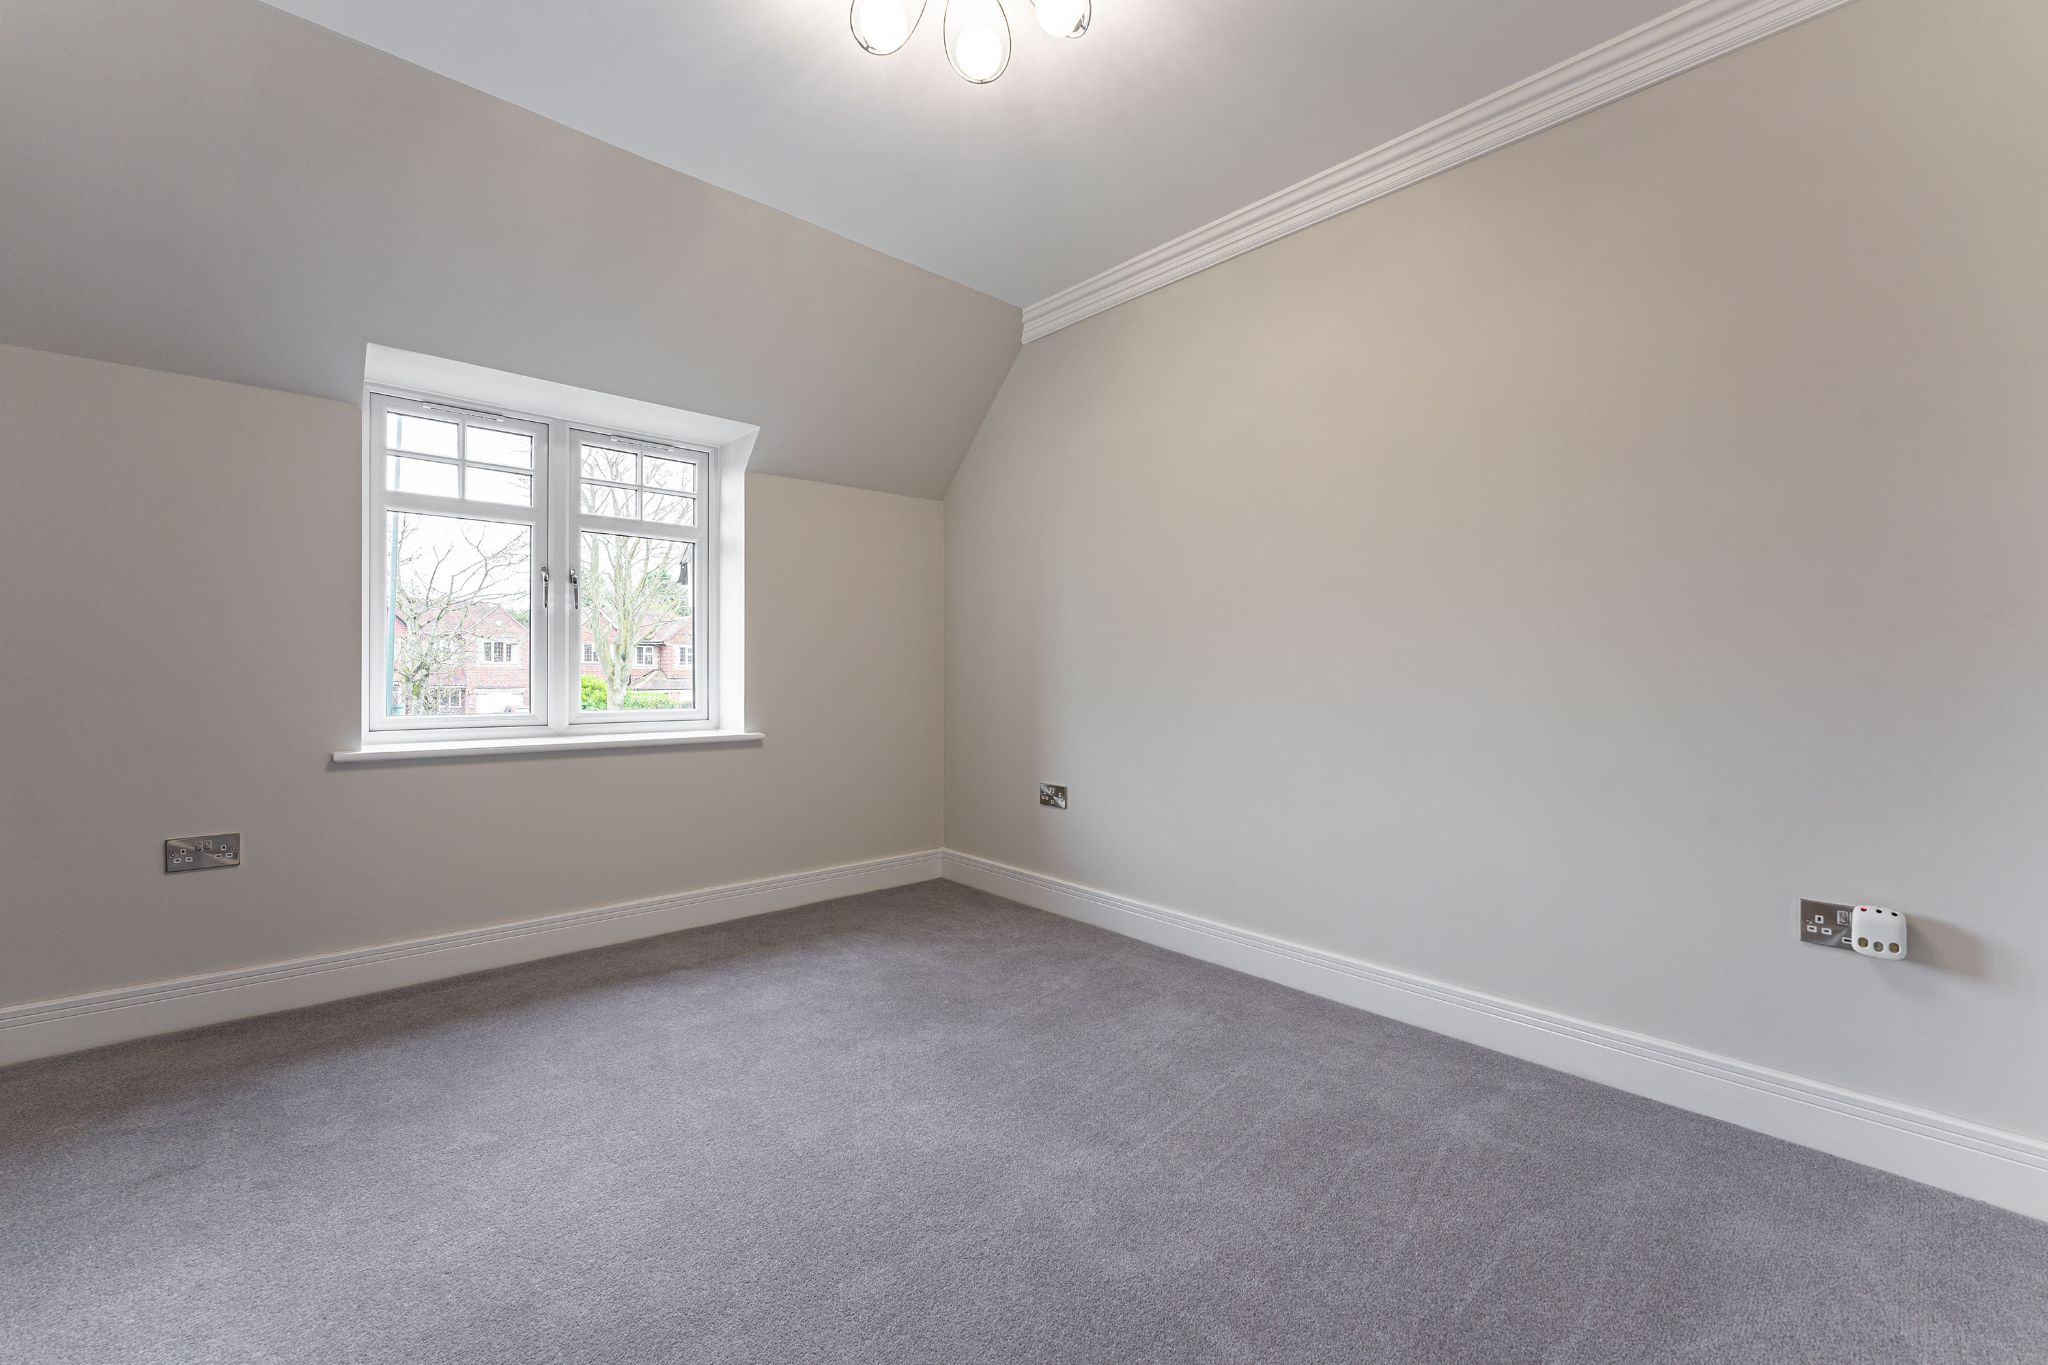 2 bedroom apartment flat/apartment SSTC in Solihull - Photograph 17.